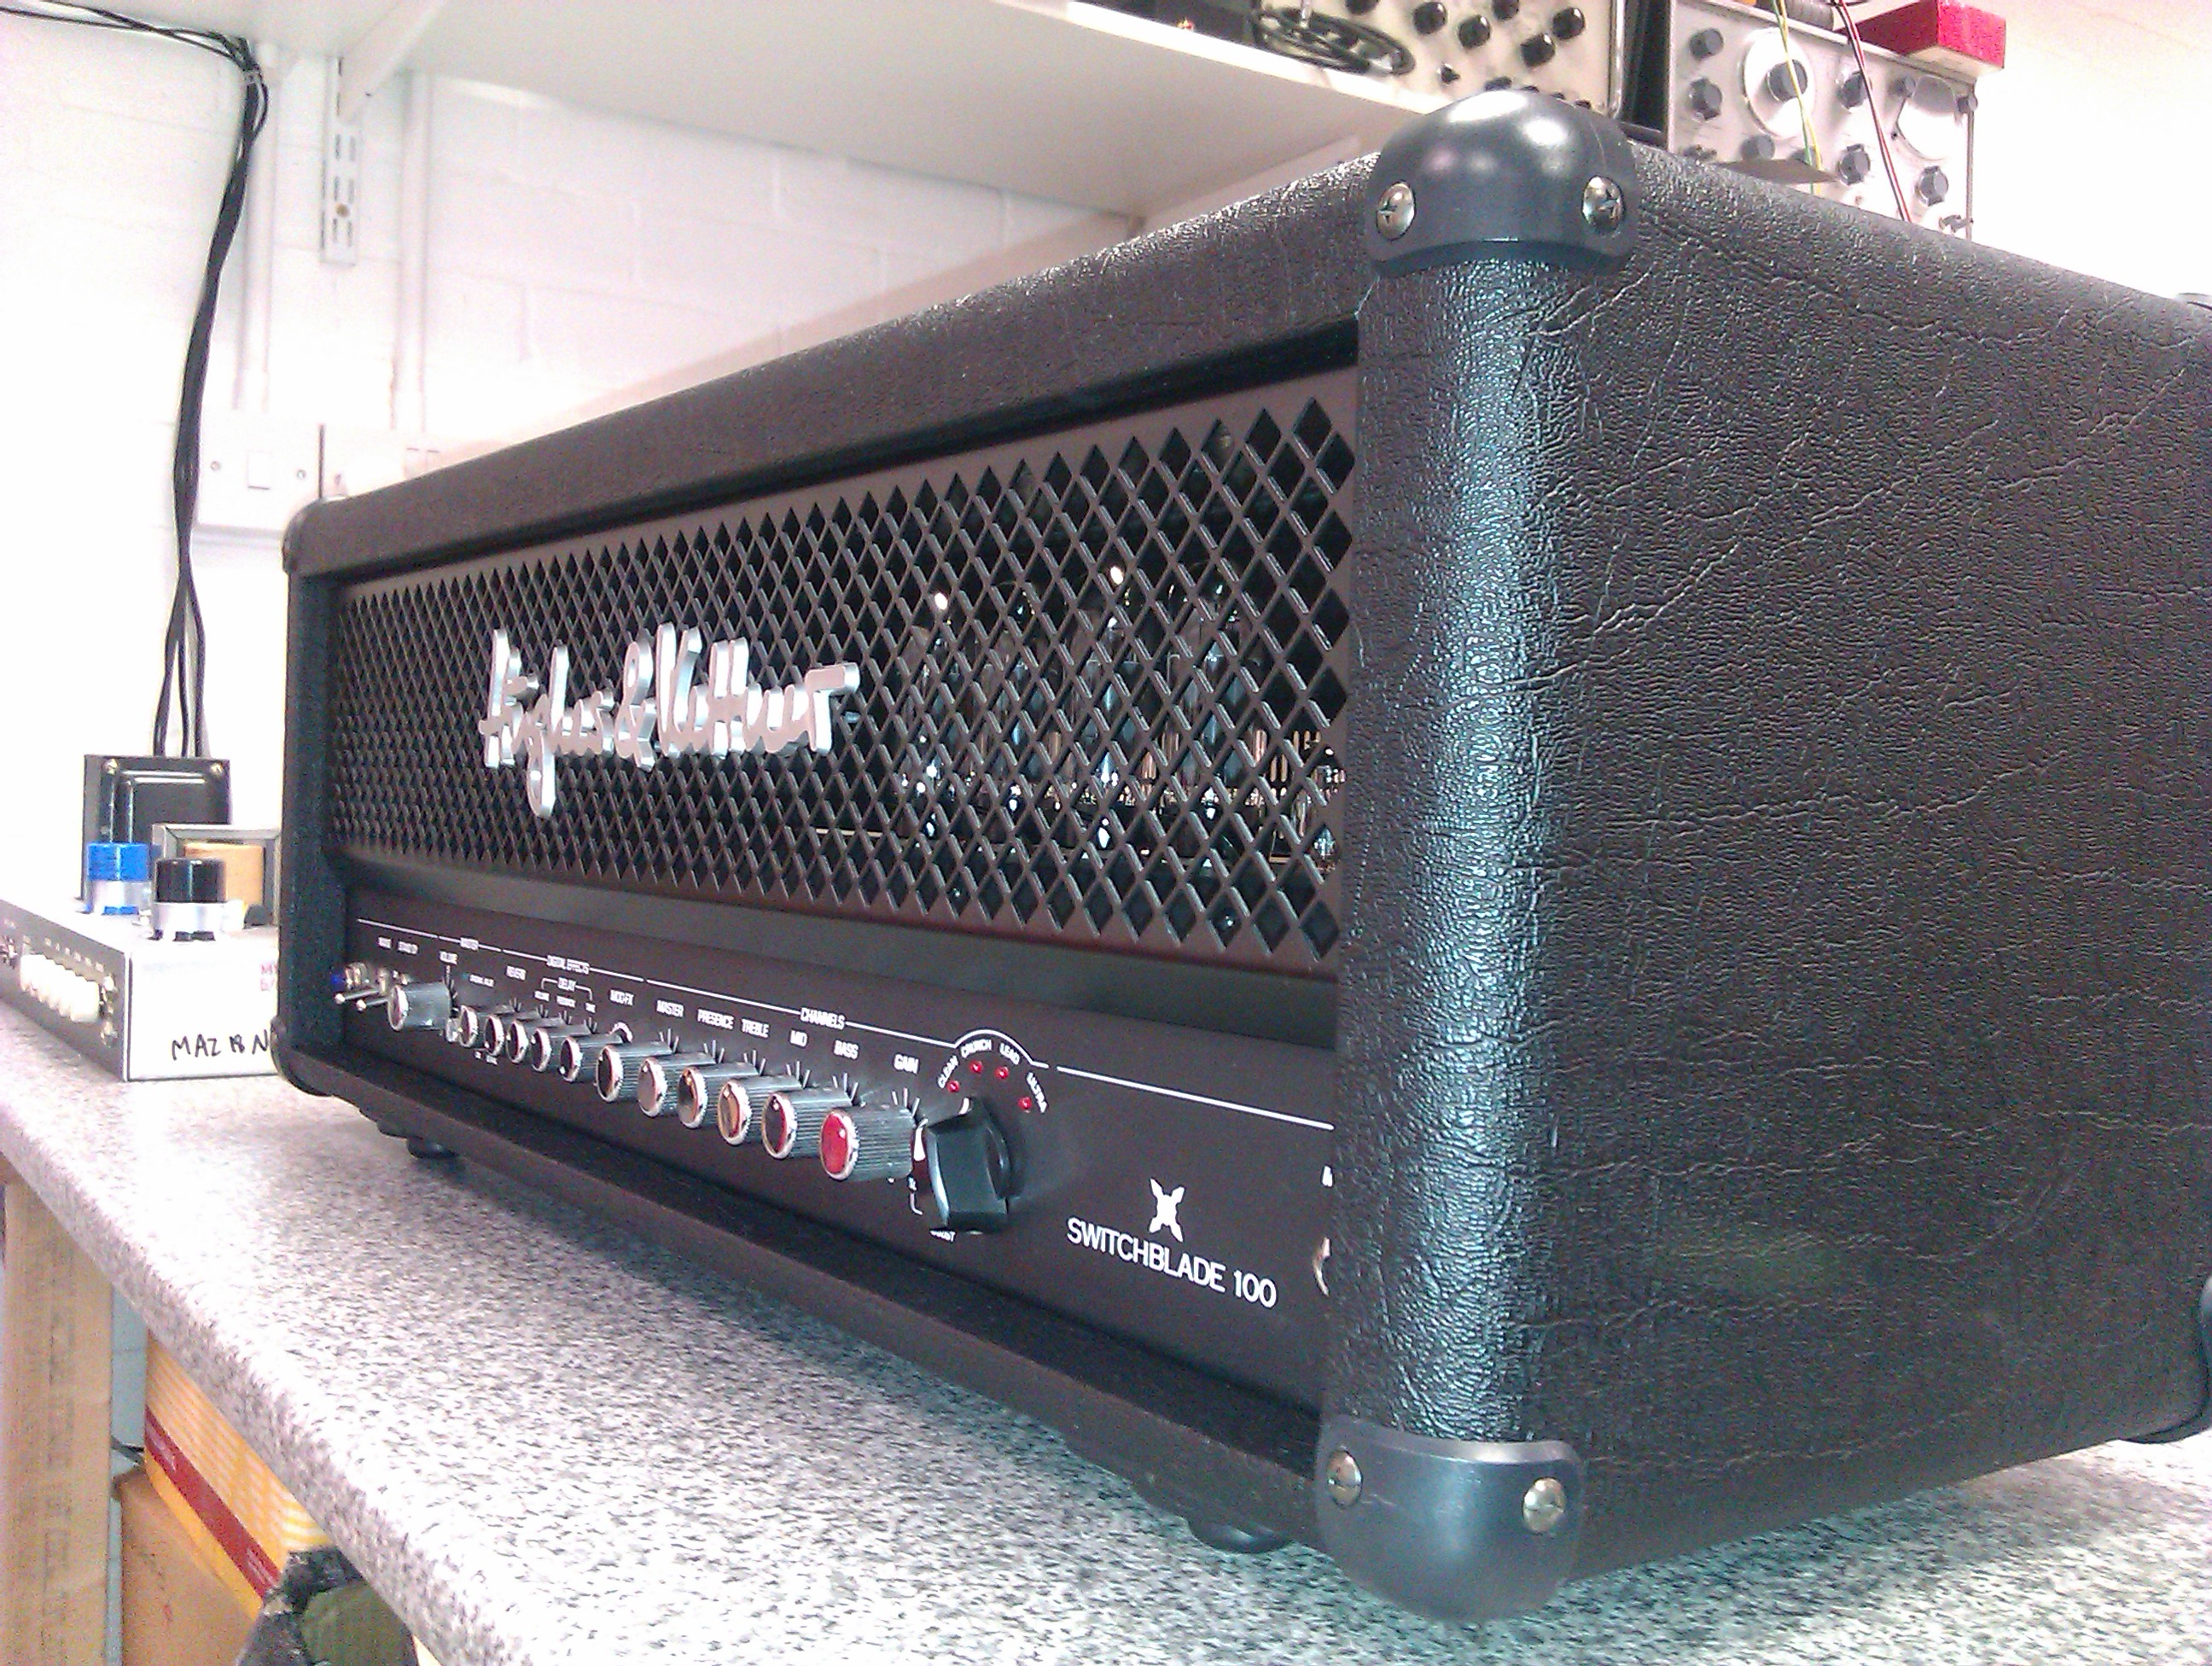 Great versatile amp, now fitted with Triode/Pentode mode selector switch